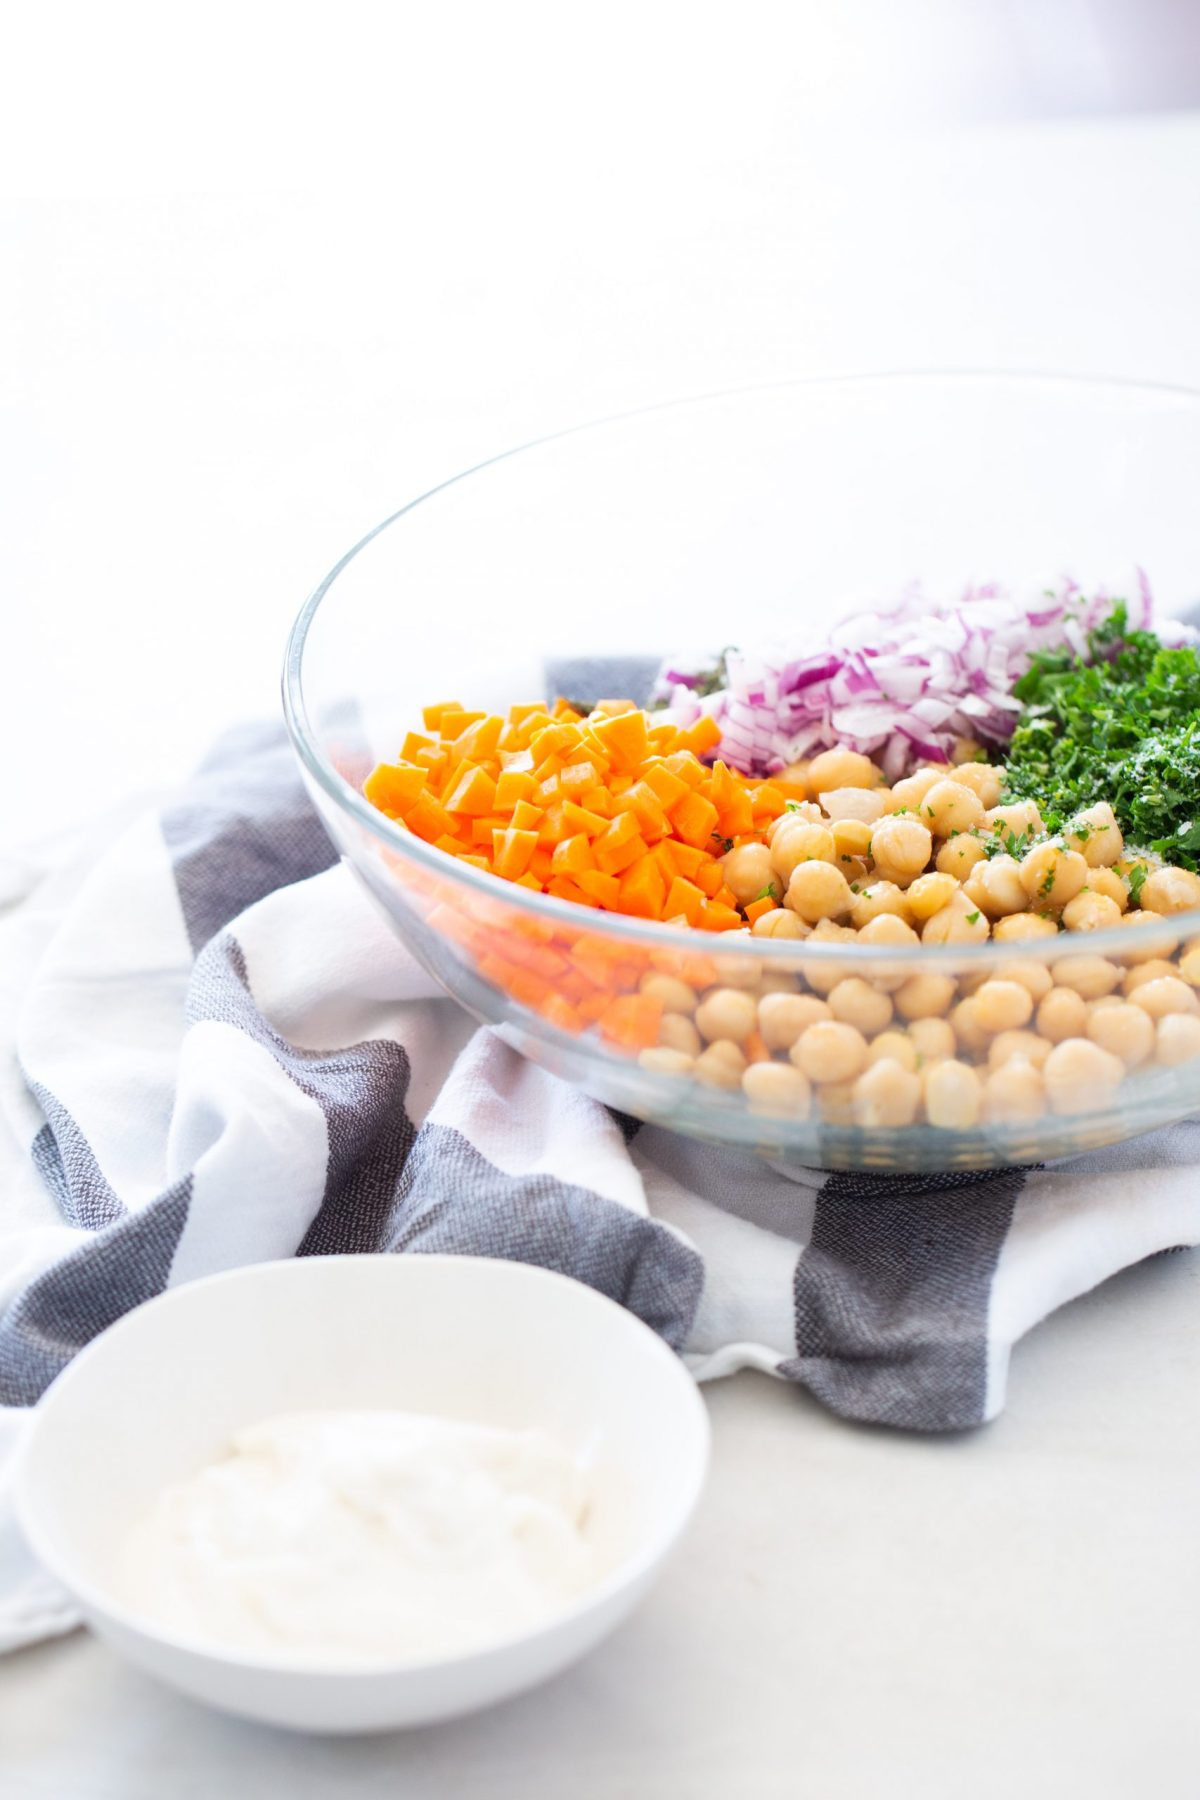 Ingredients to mix to make a vegan chickpea salad